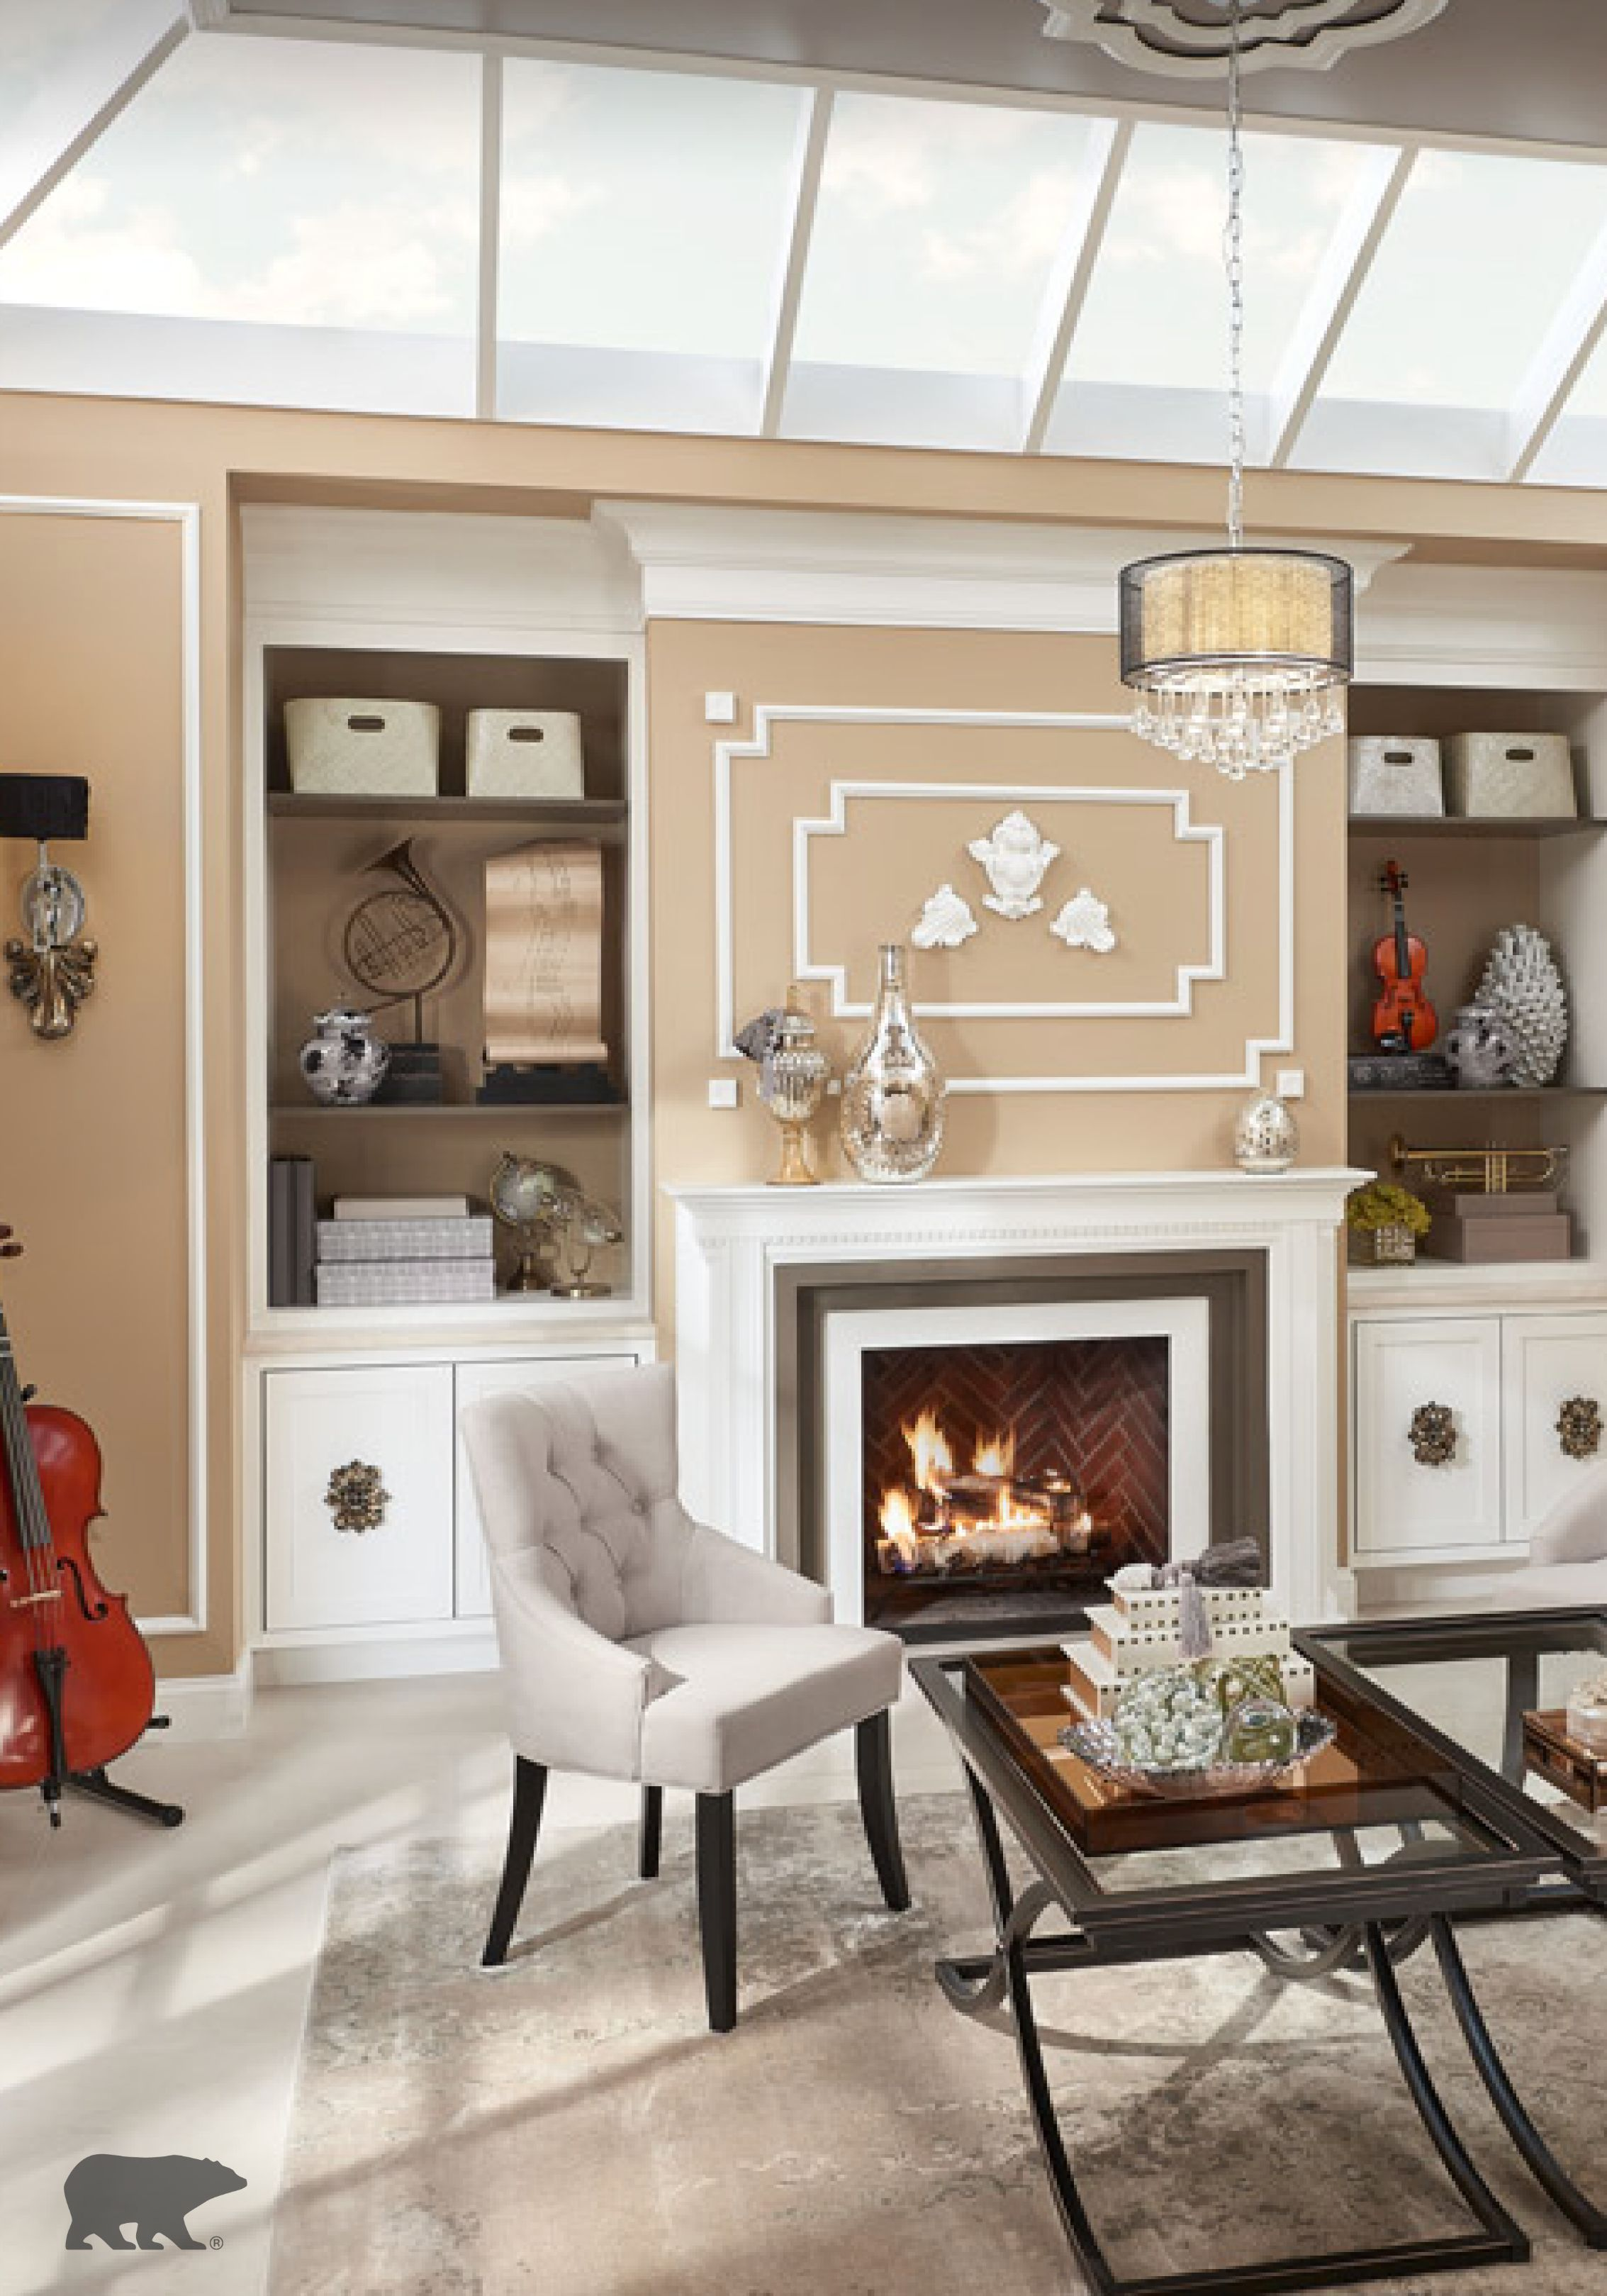 color trends and inspiration for interior design behr on trendy paint colors living room id=88268